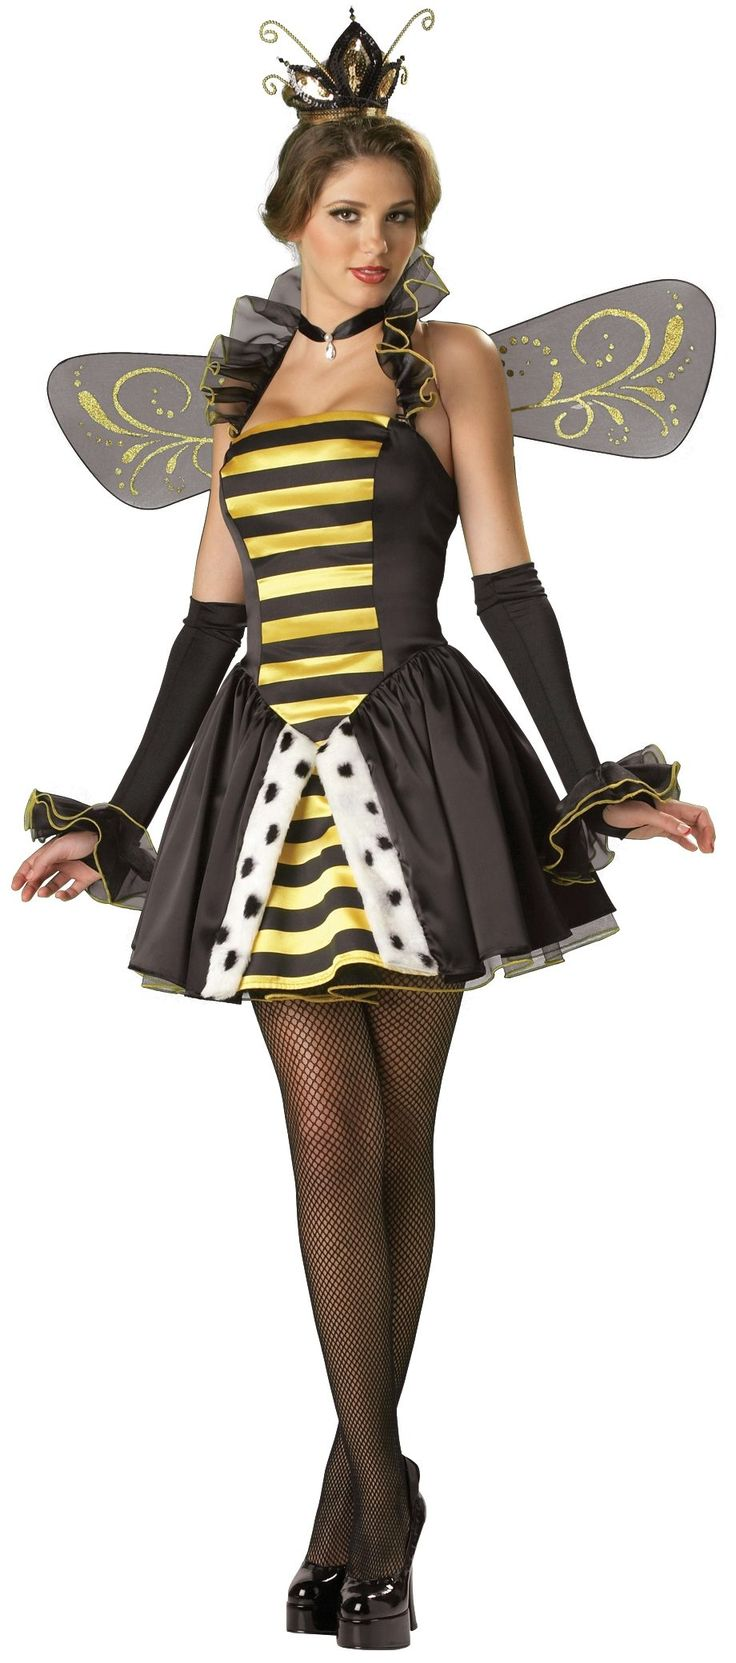 Queen Miss-Bee-Have Adult Bumble Bee Costume - Mr. Costumes